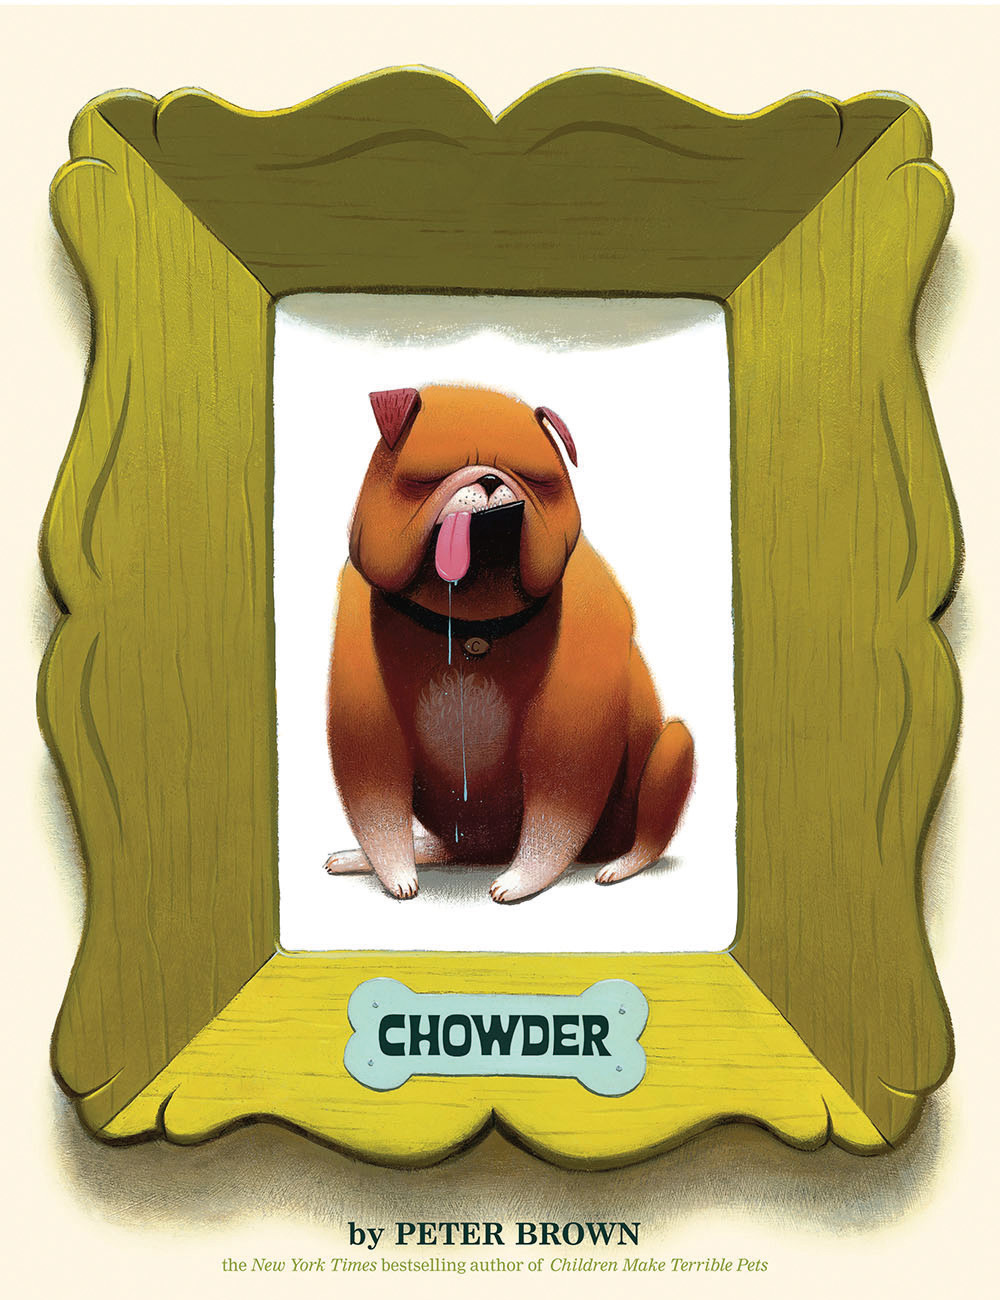 Brown, Peter 2012_06 - CHOWDER - PB - RLM PR.jpg